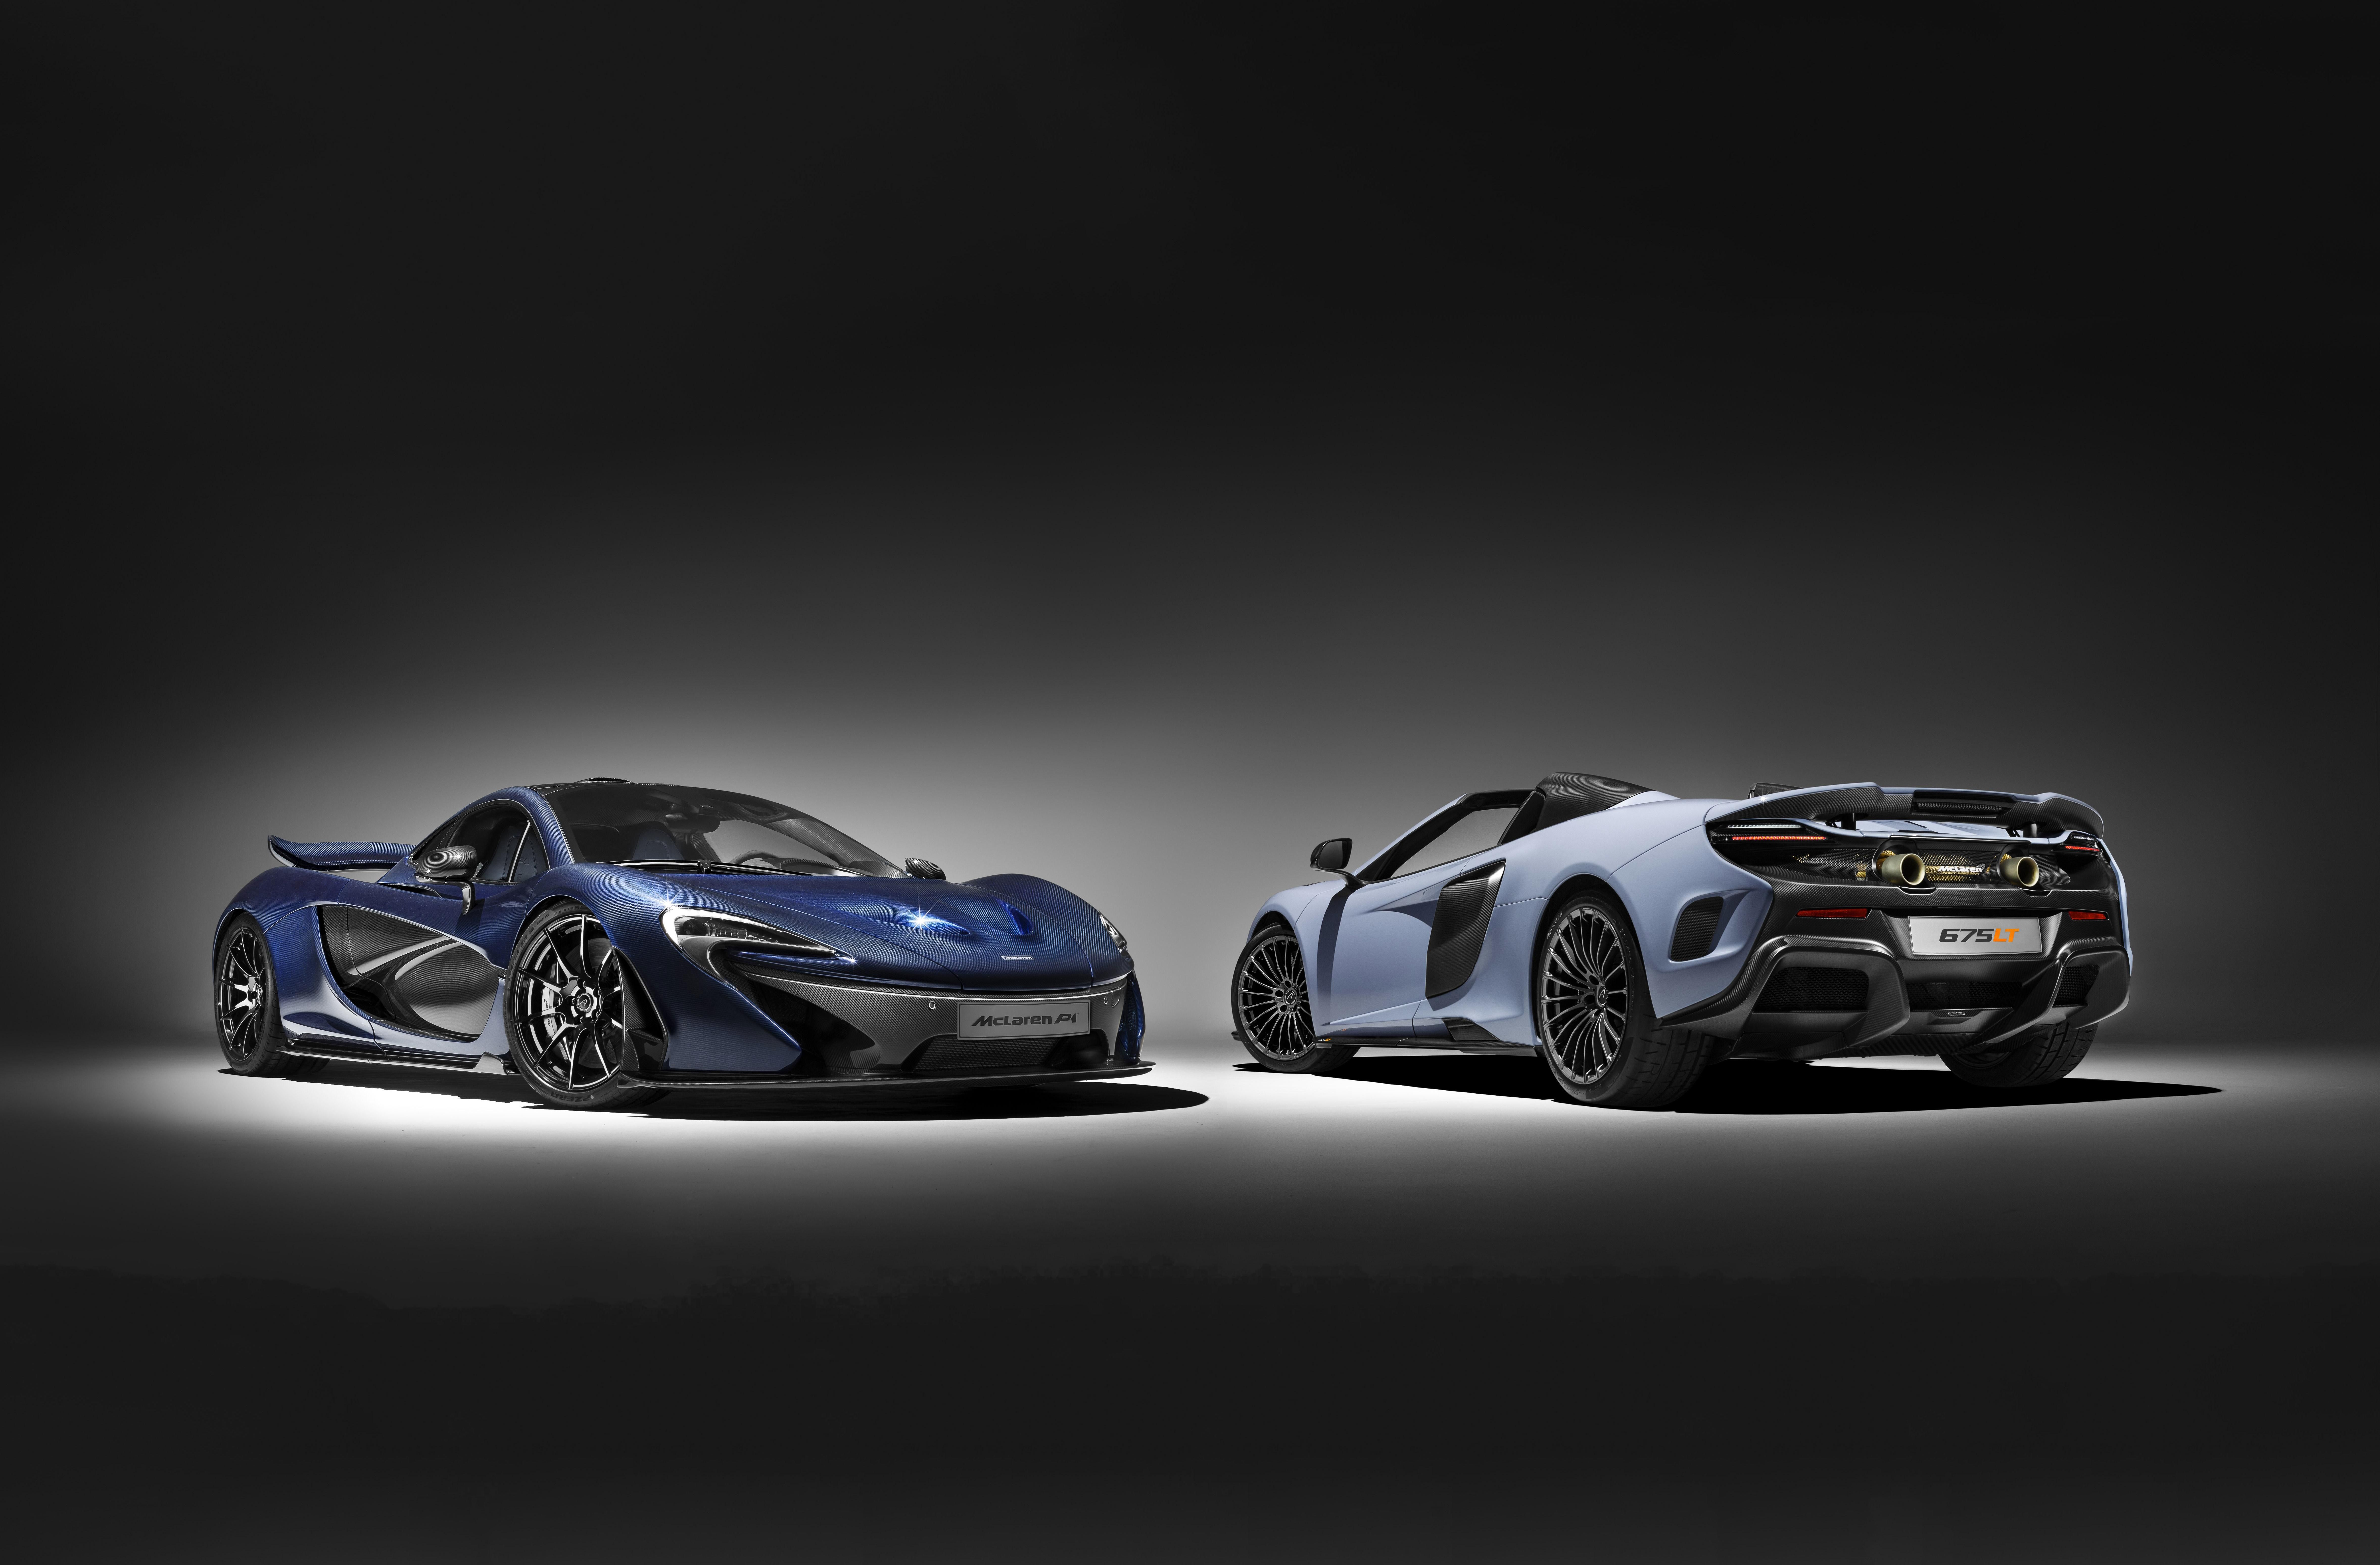 British Luxury Automaker McLaren Has Just Unveiled Two Cars That Will Debut  At The Geneva Motor